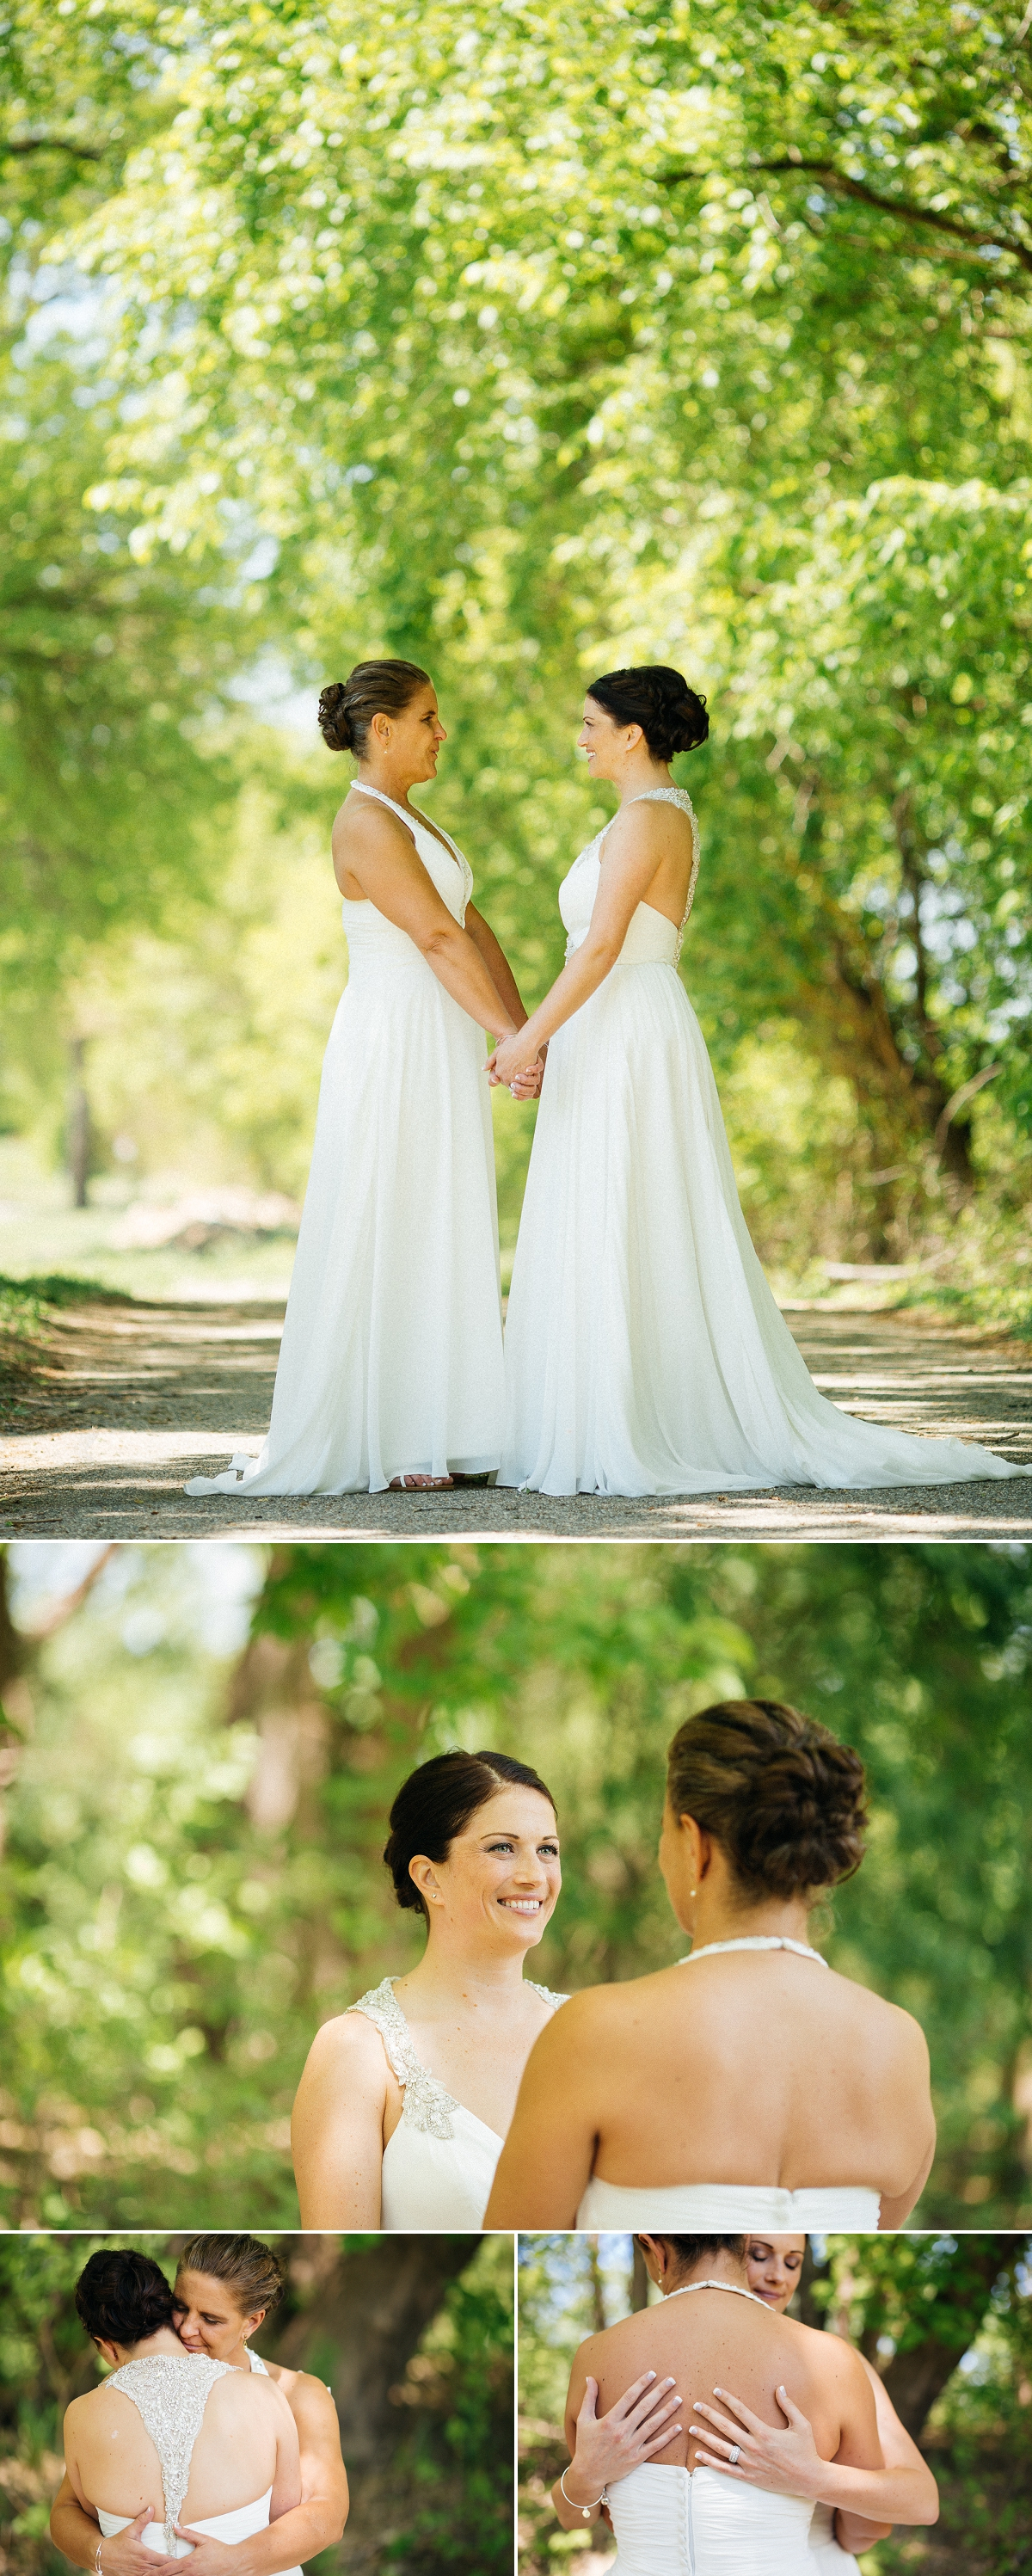 Beth and Gina Shakopee Wedding Photography 6